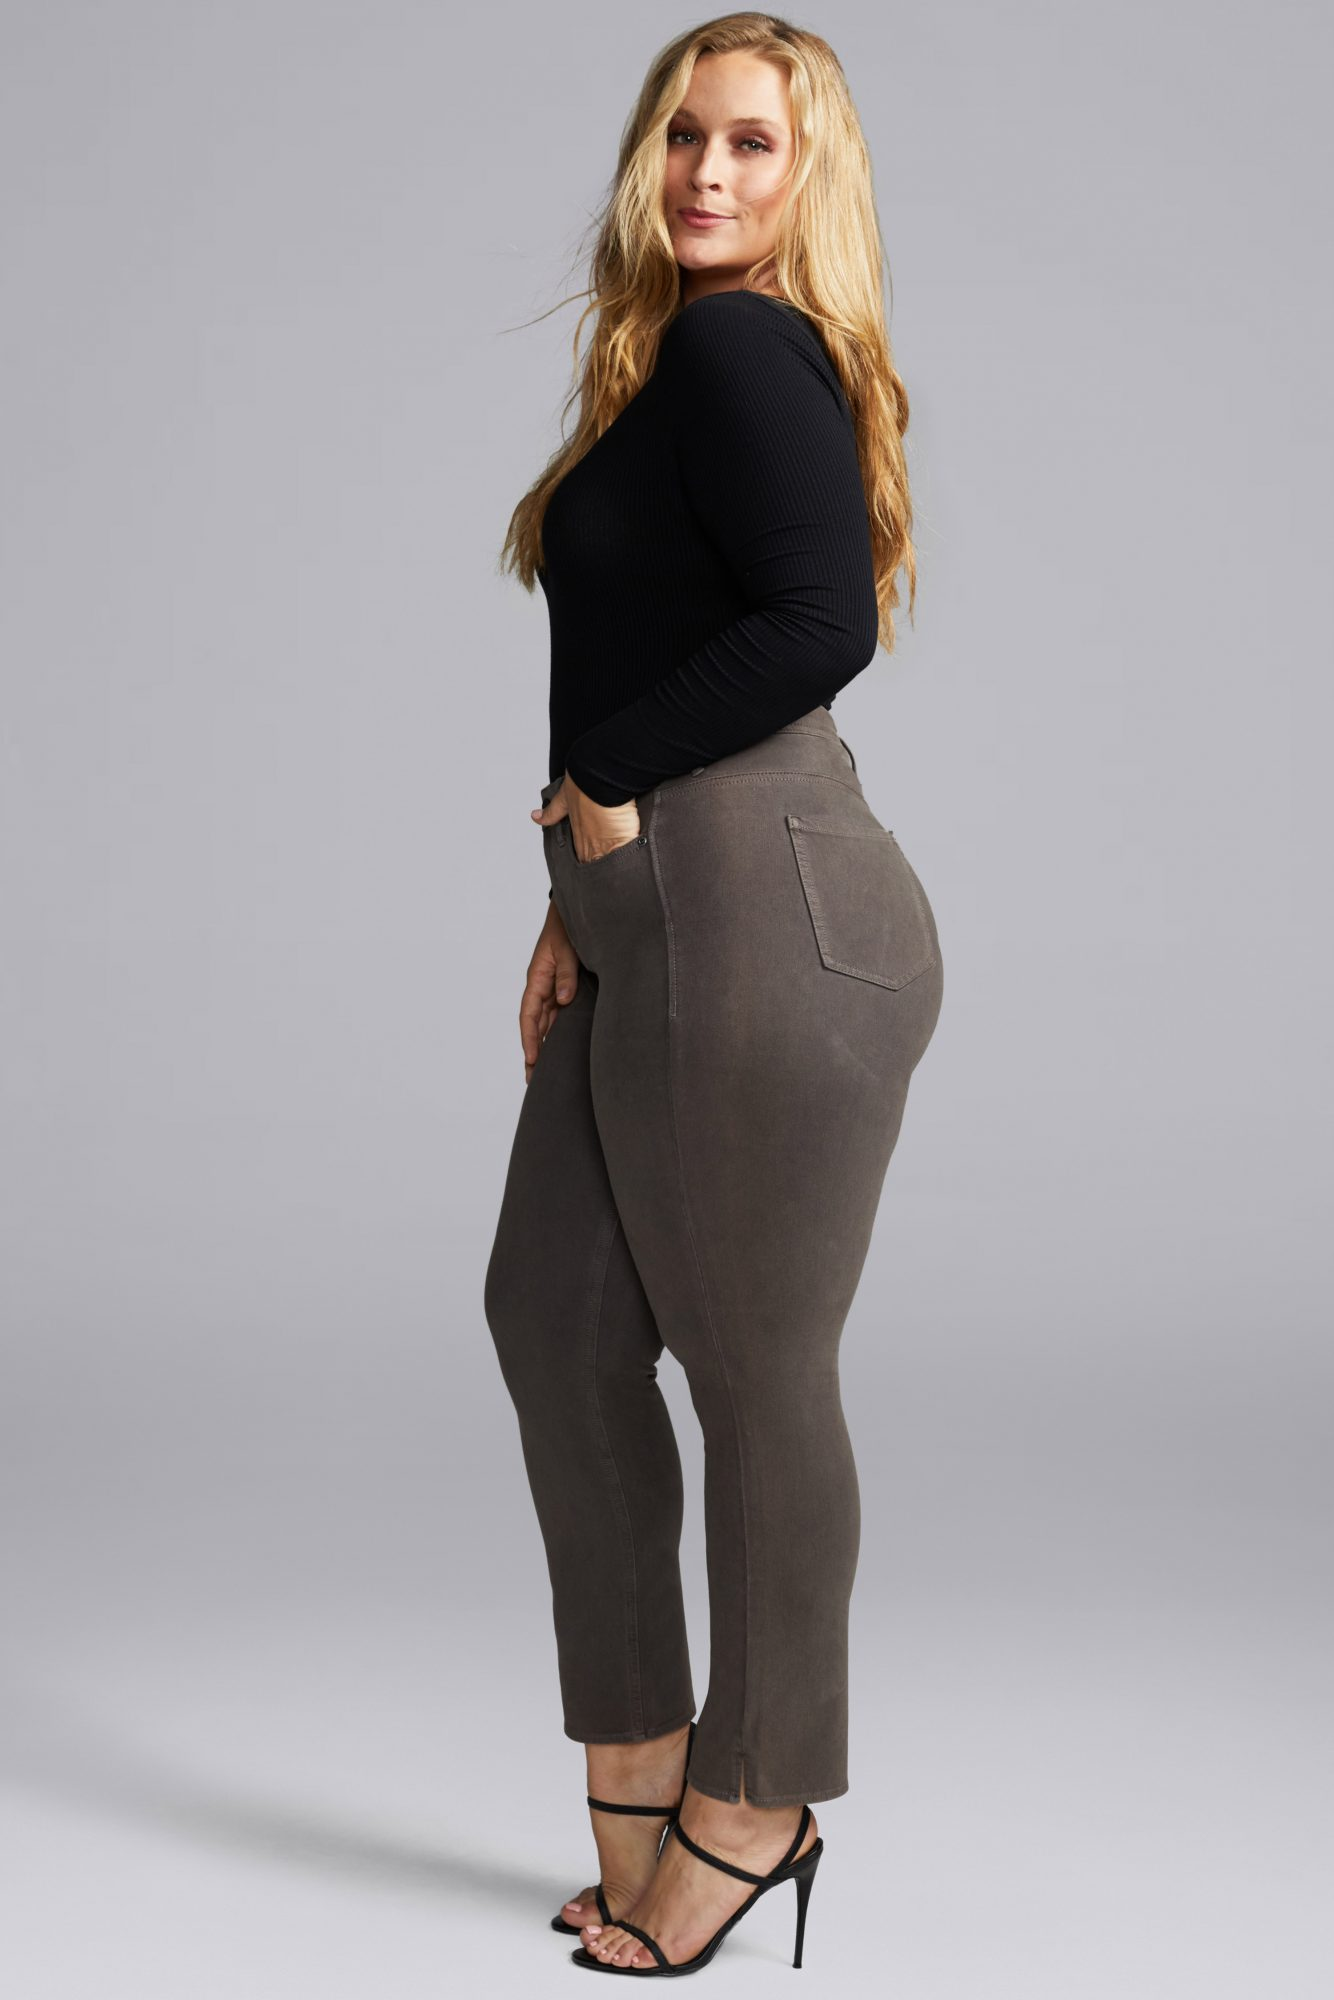 Curves 360 by NYDJ Affordable Plus-Size Clothing